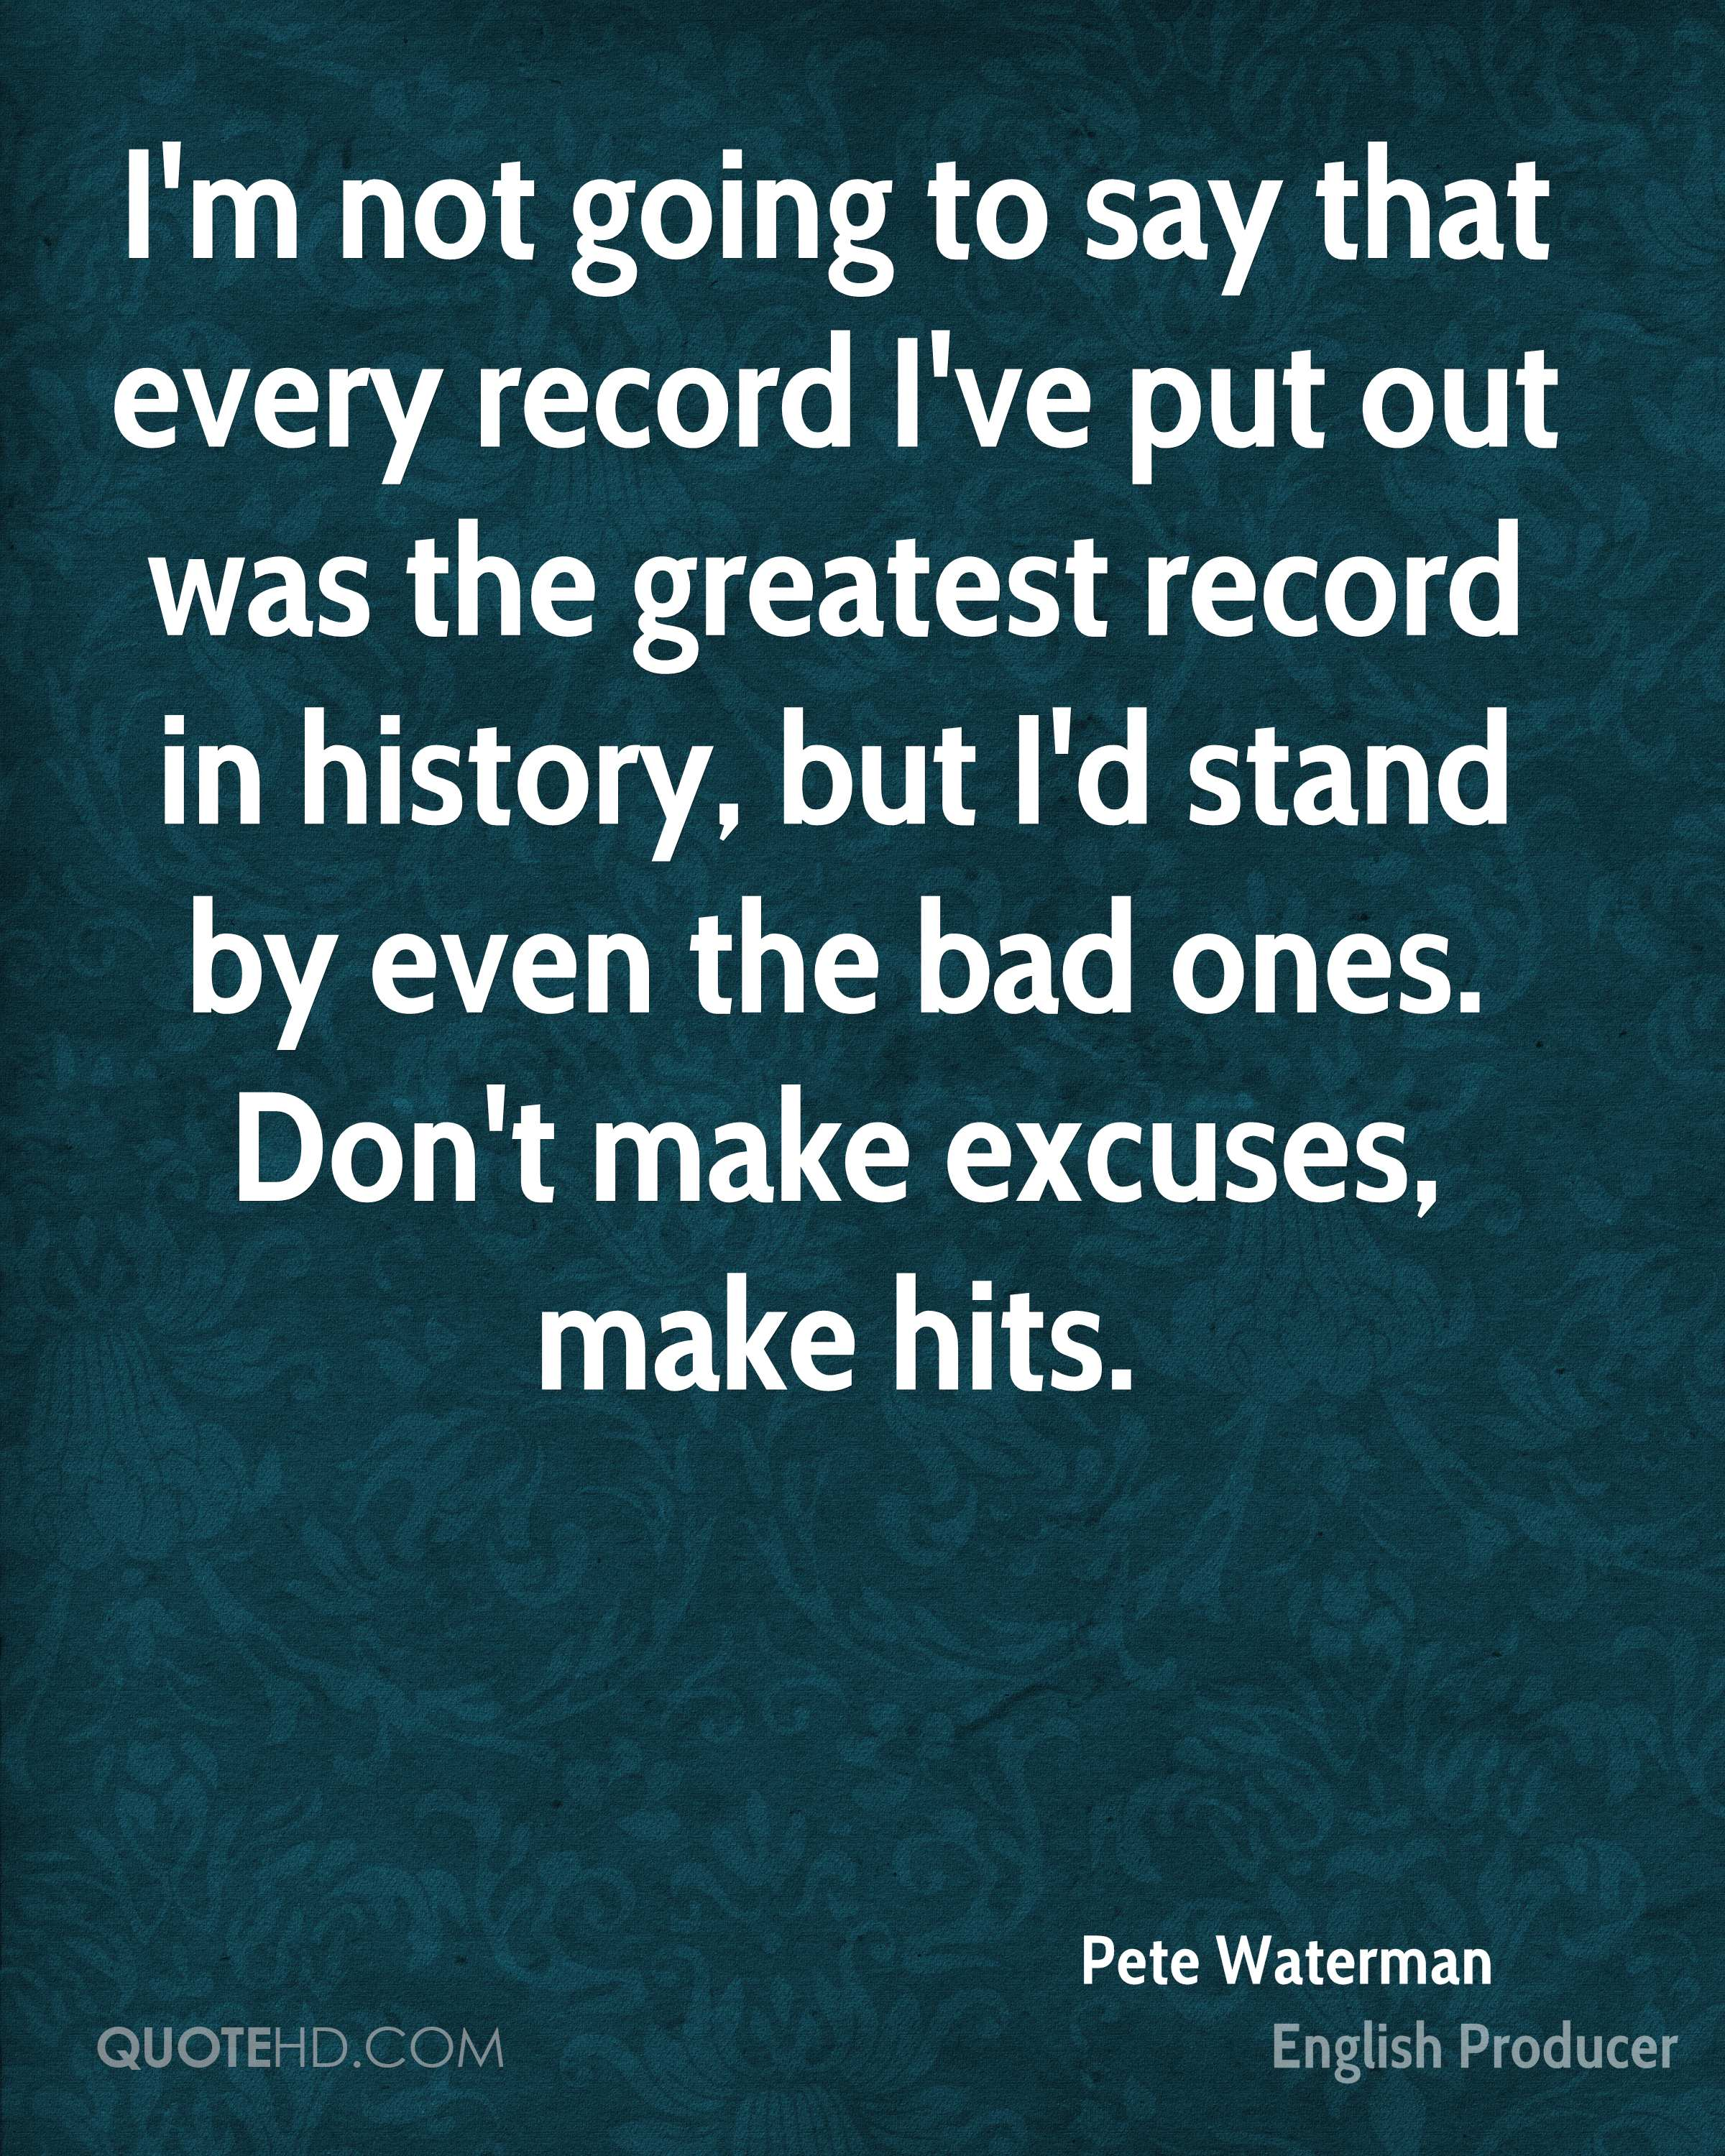 I'm not going to say that every record I've put out was the greatest record in history, but I'd stand by even the bad ones. Don't make excuses, make hits.